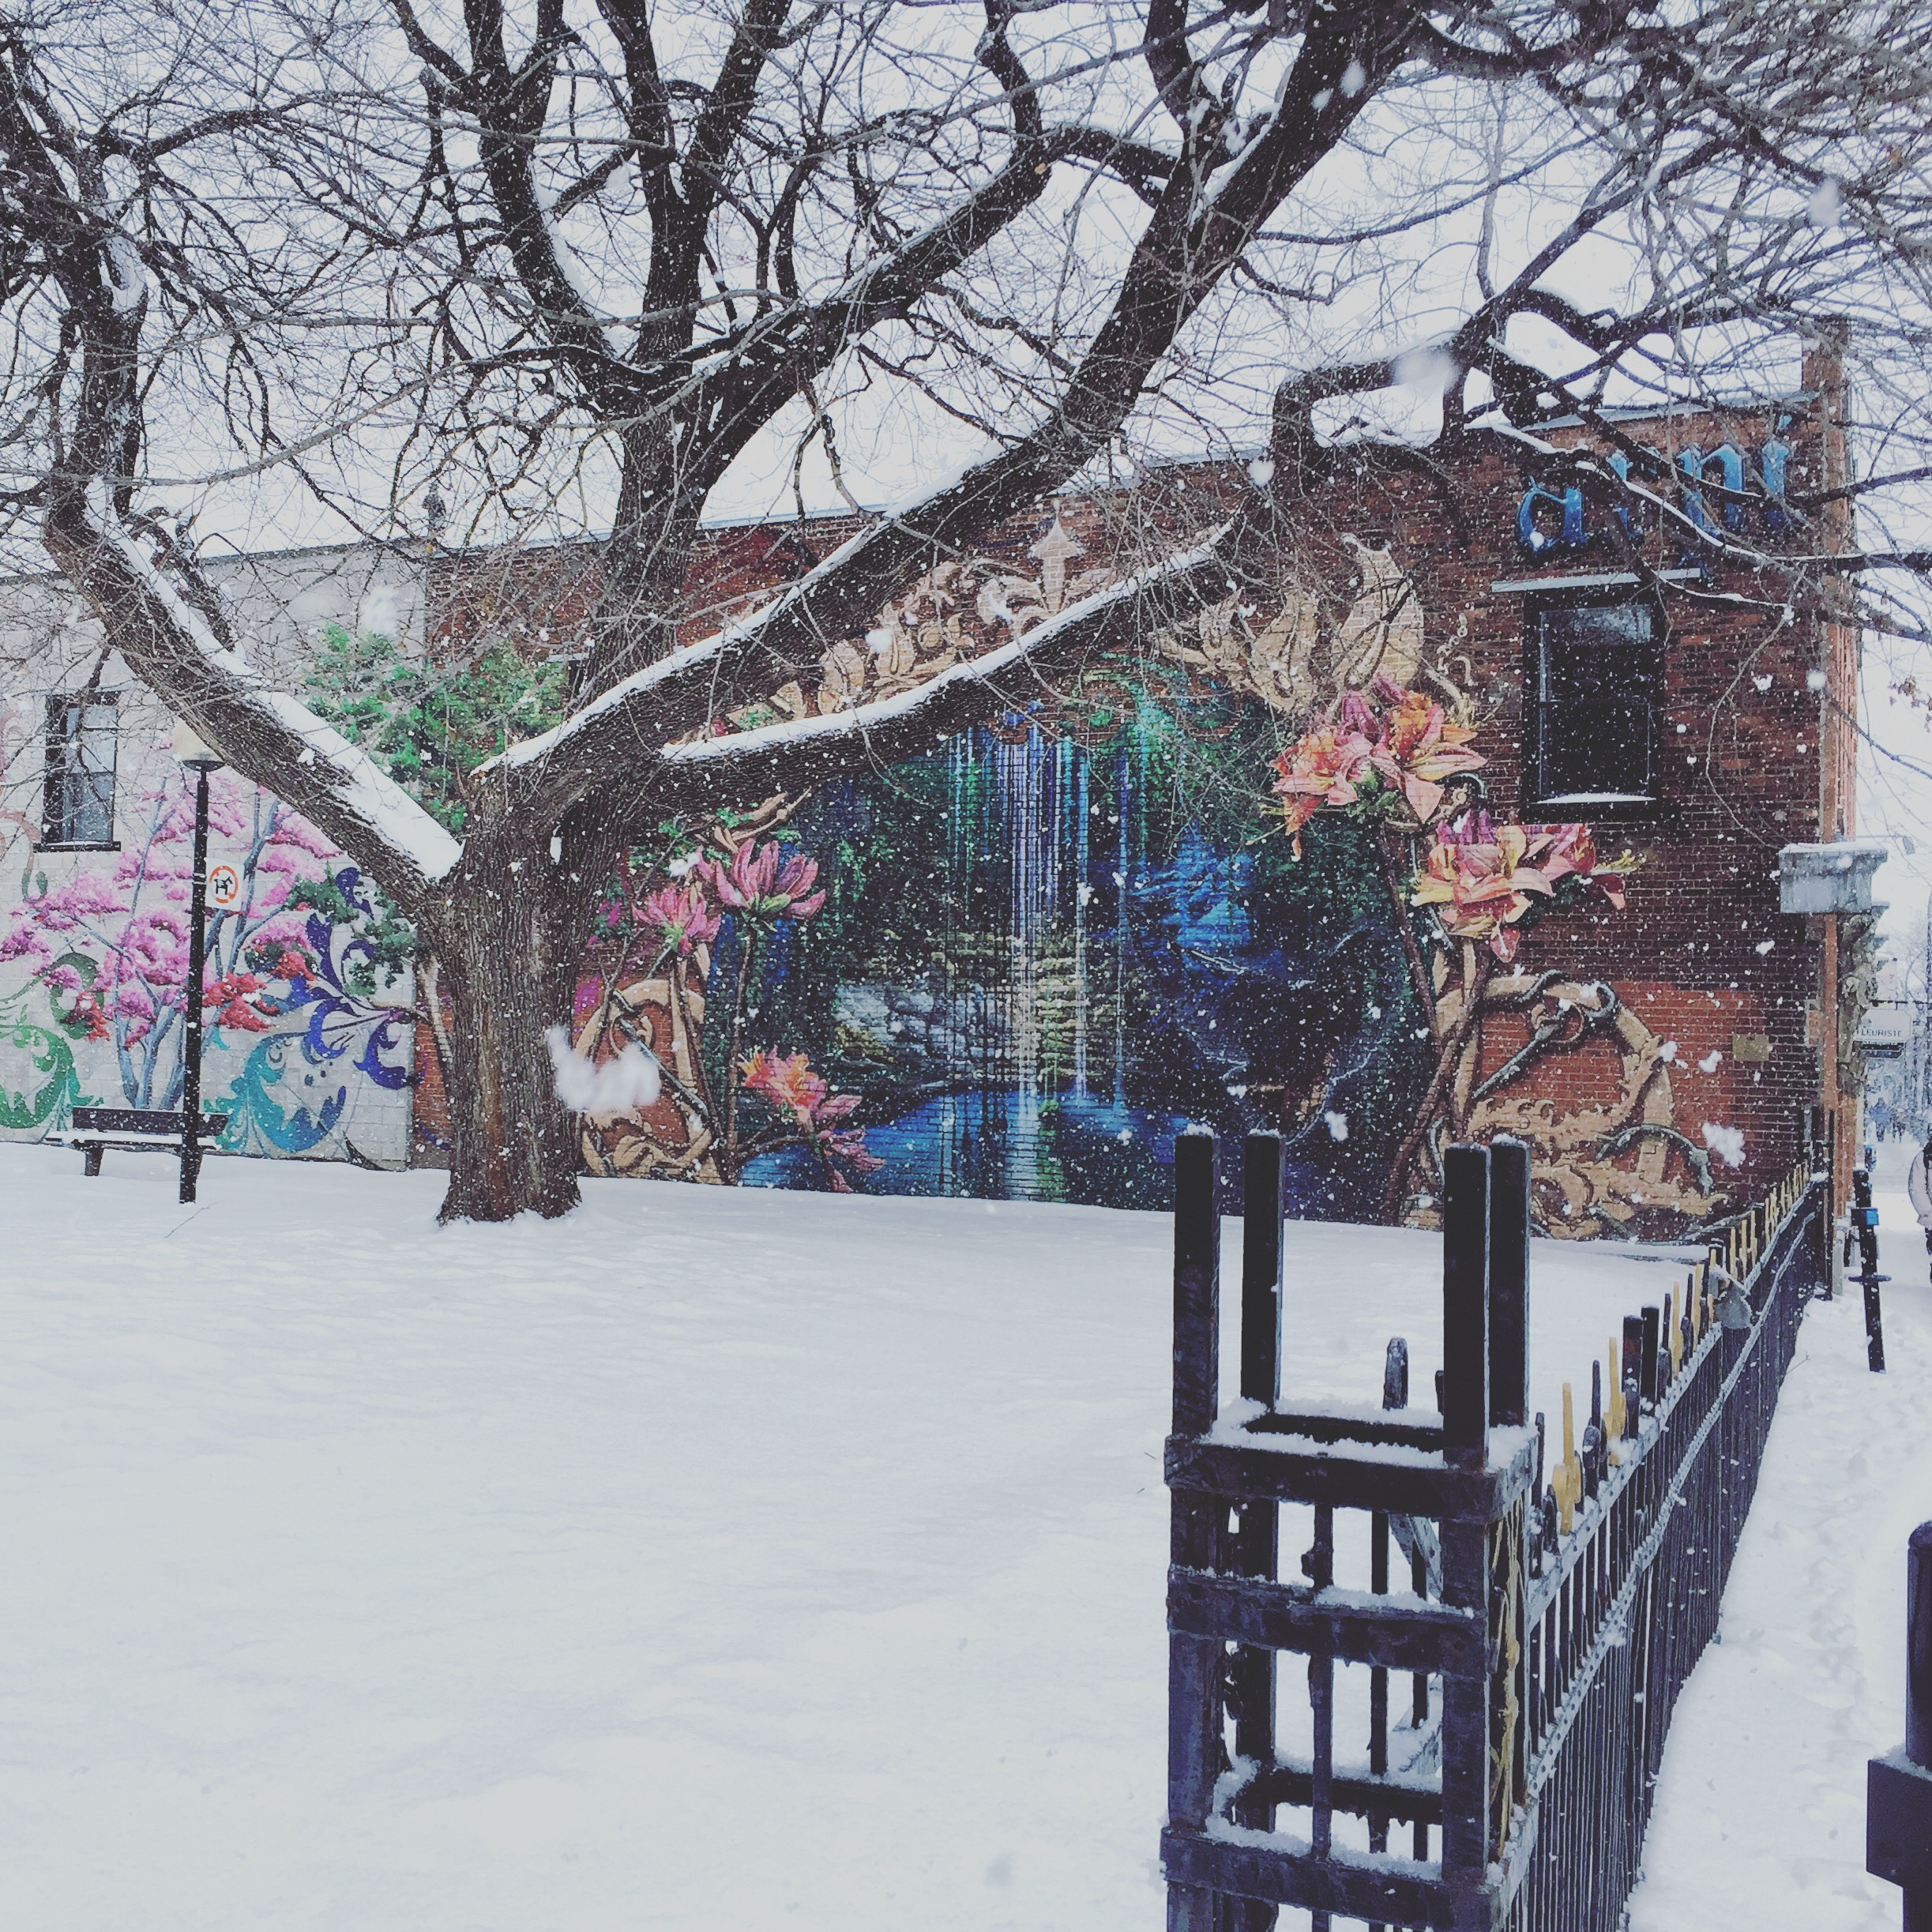 Started off with a beautiful snowy morning walk to the coffee shop